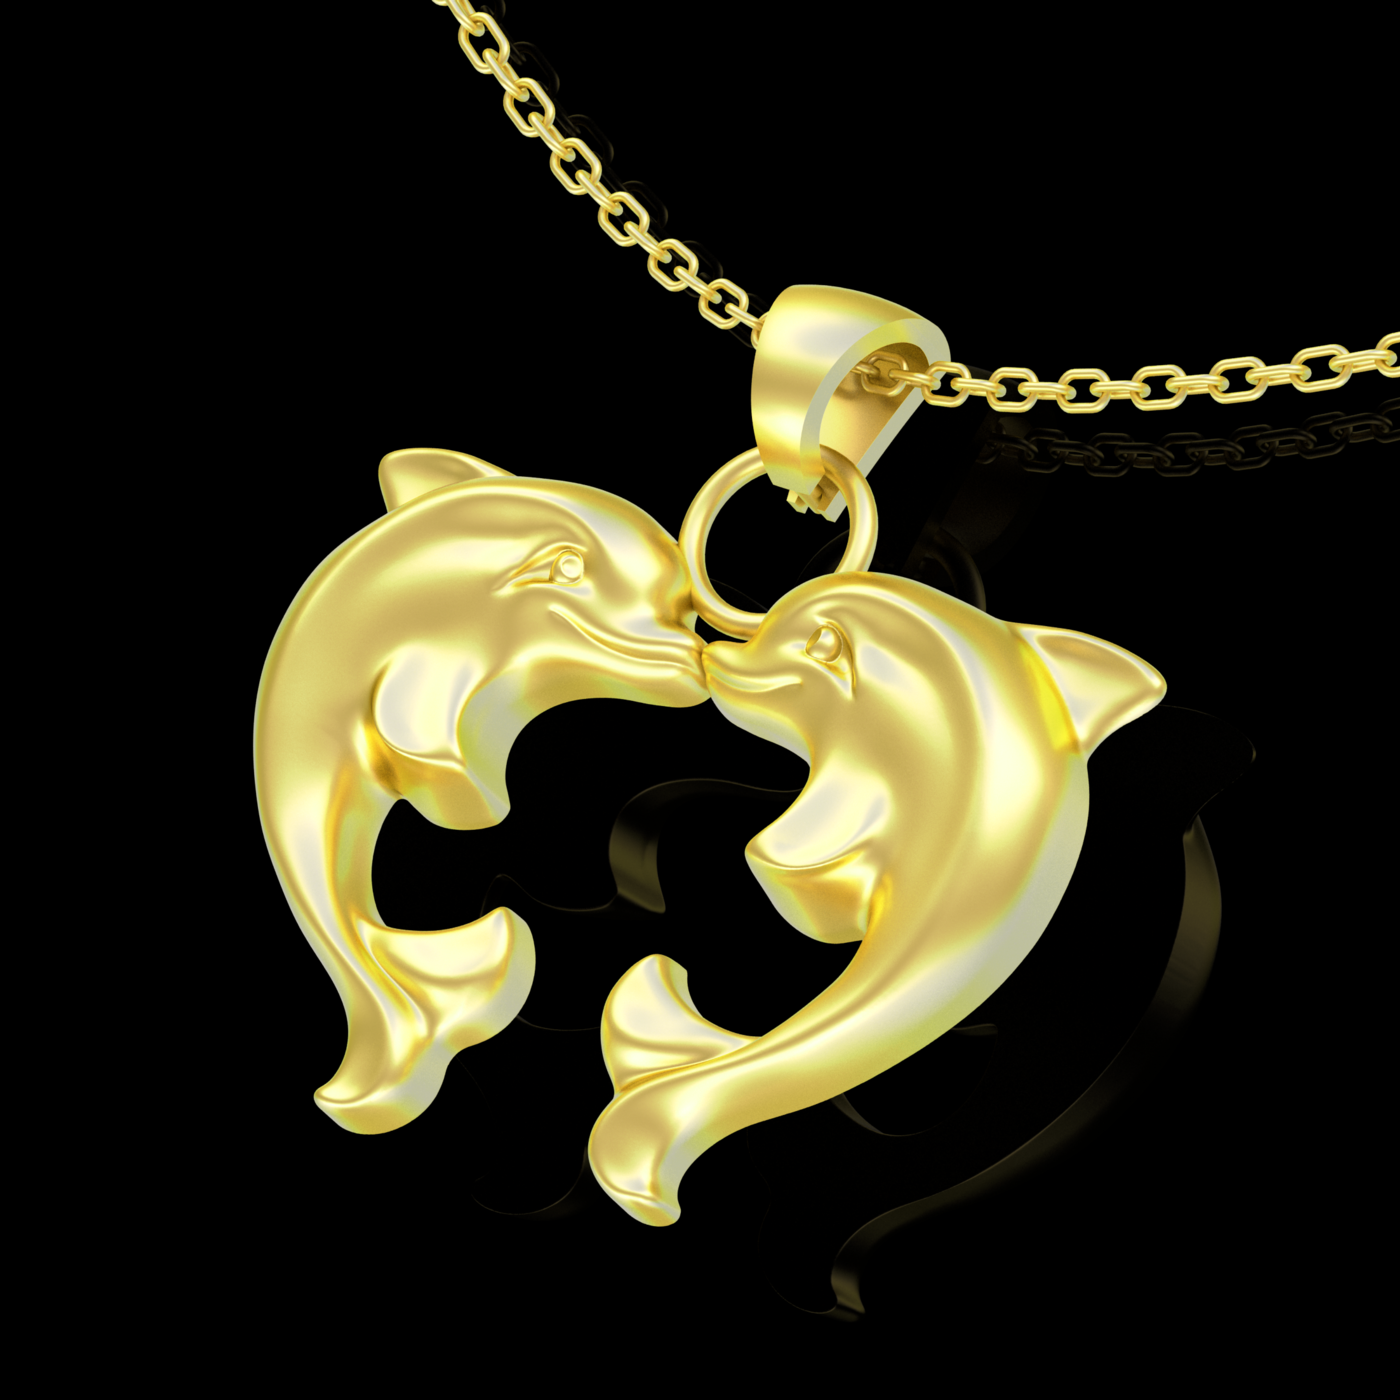 Two Heart-Shaped Dolphins Pendant jewelry Gold 3D print model